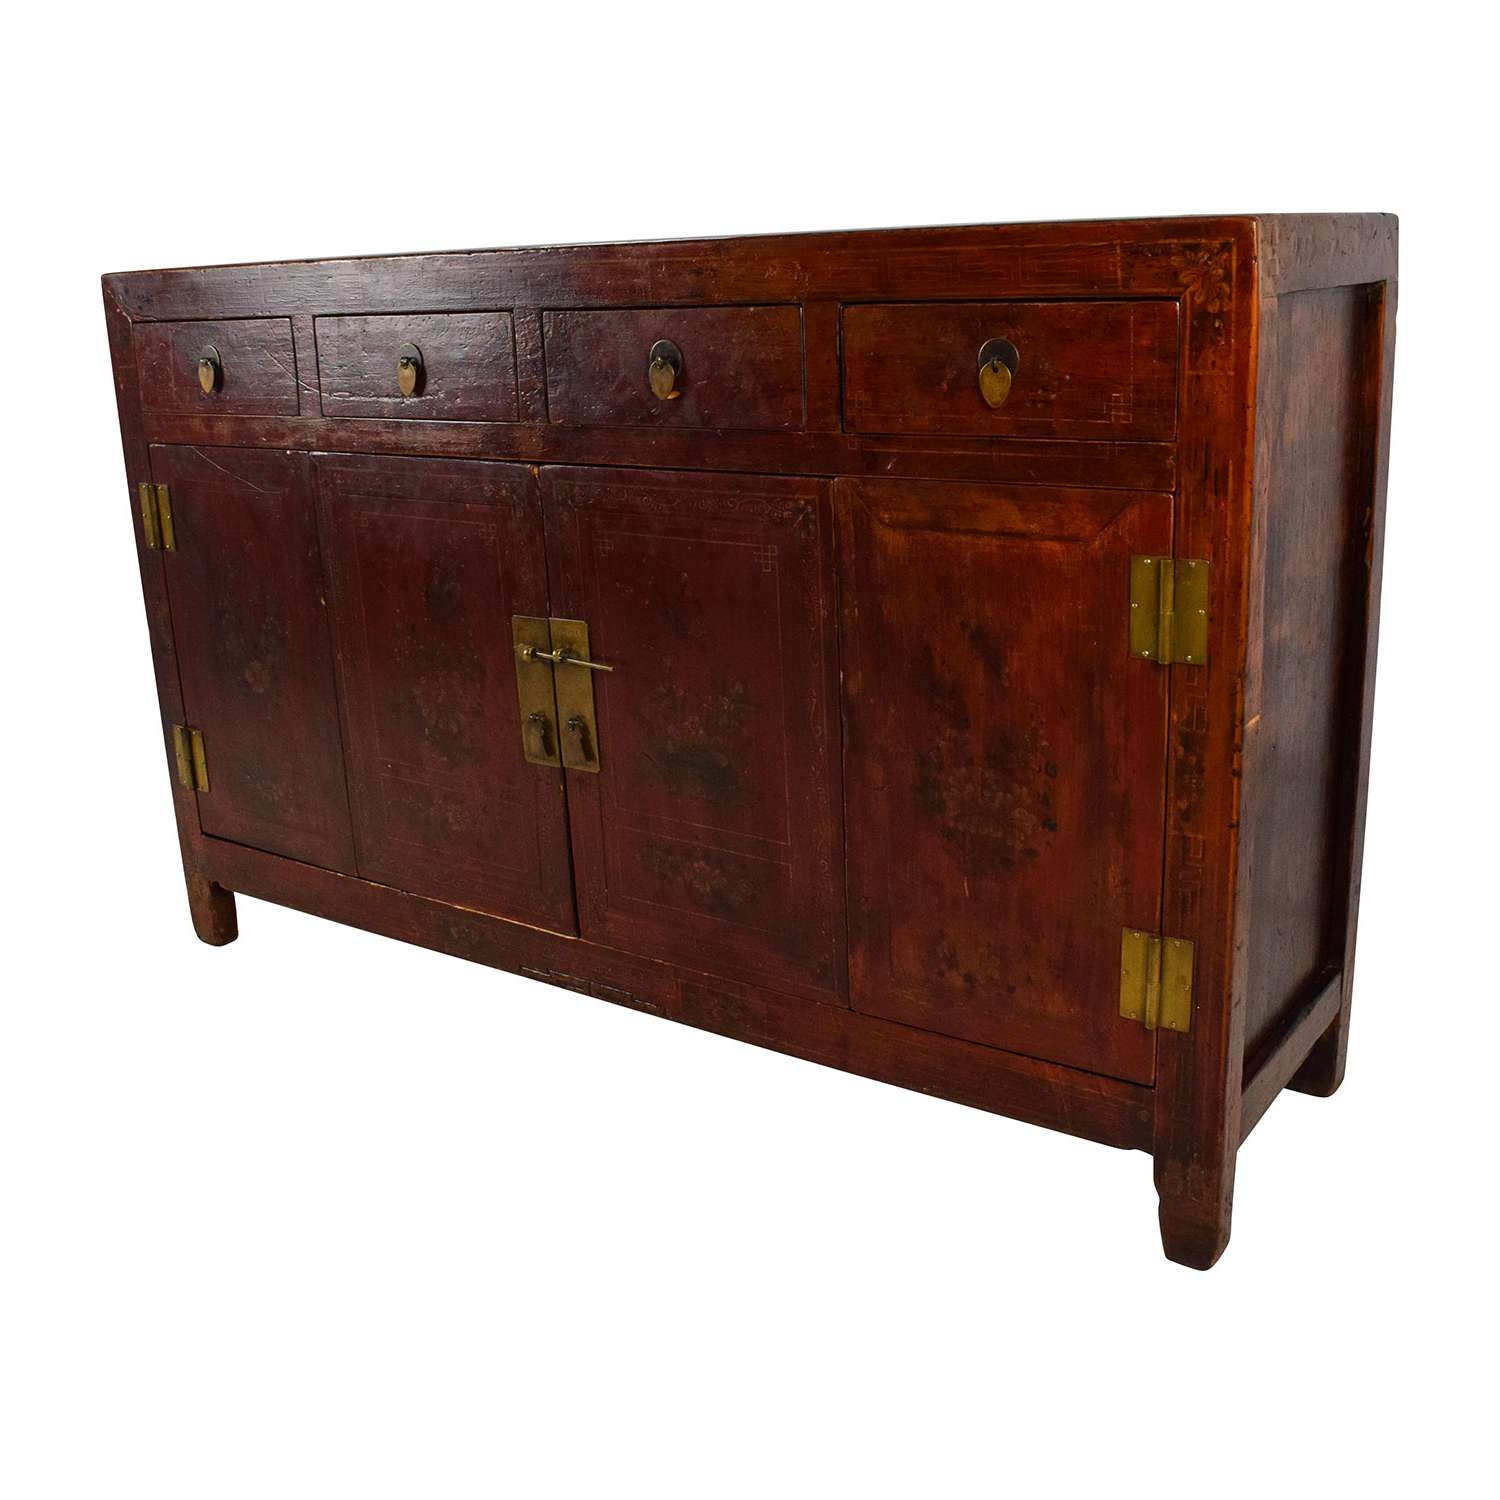 66% Off – Solid Wood Southeast Asian Credenza / Storage Within Asian Sideboards (View 2 of 20)